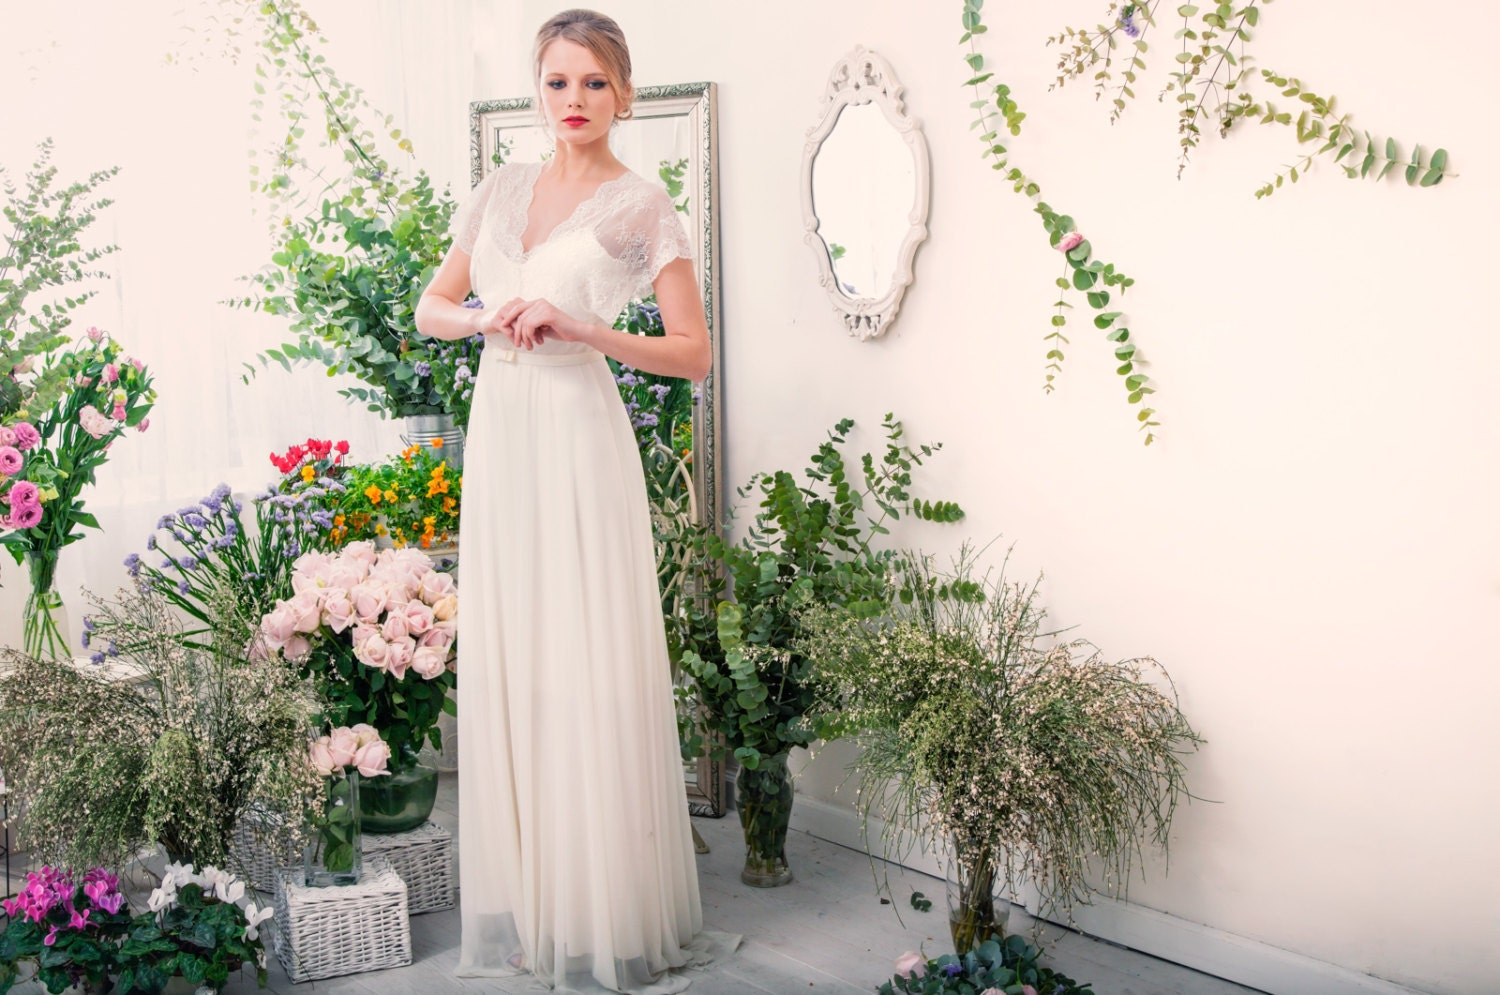 Abigail Romantic Wedding Dress With Lace Top And By TheBride2B